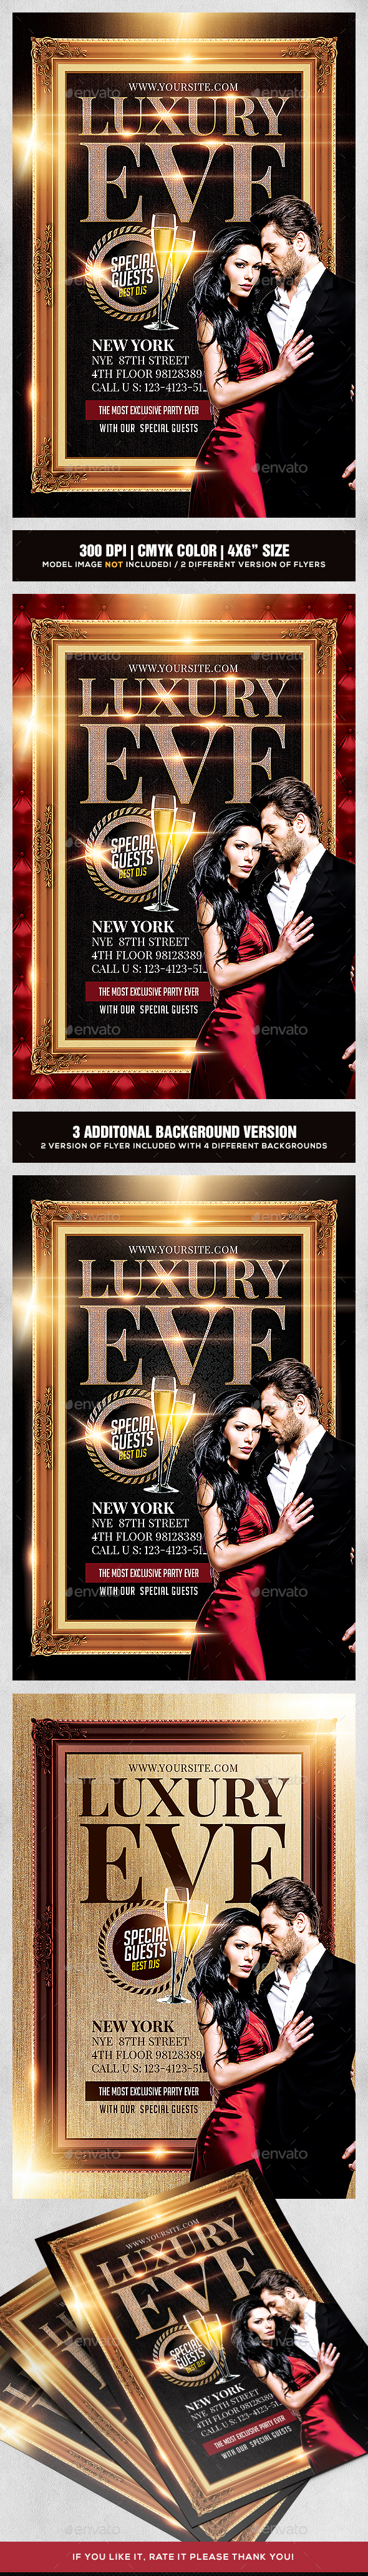 Luxury Eve Party Flyer Template - Clubs & Parties Events